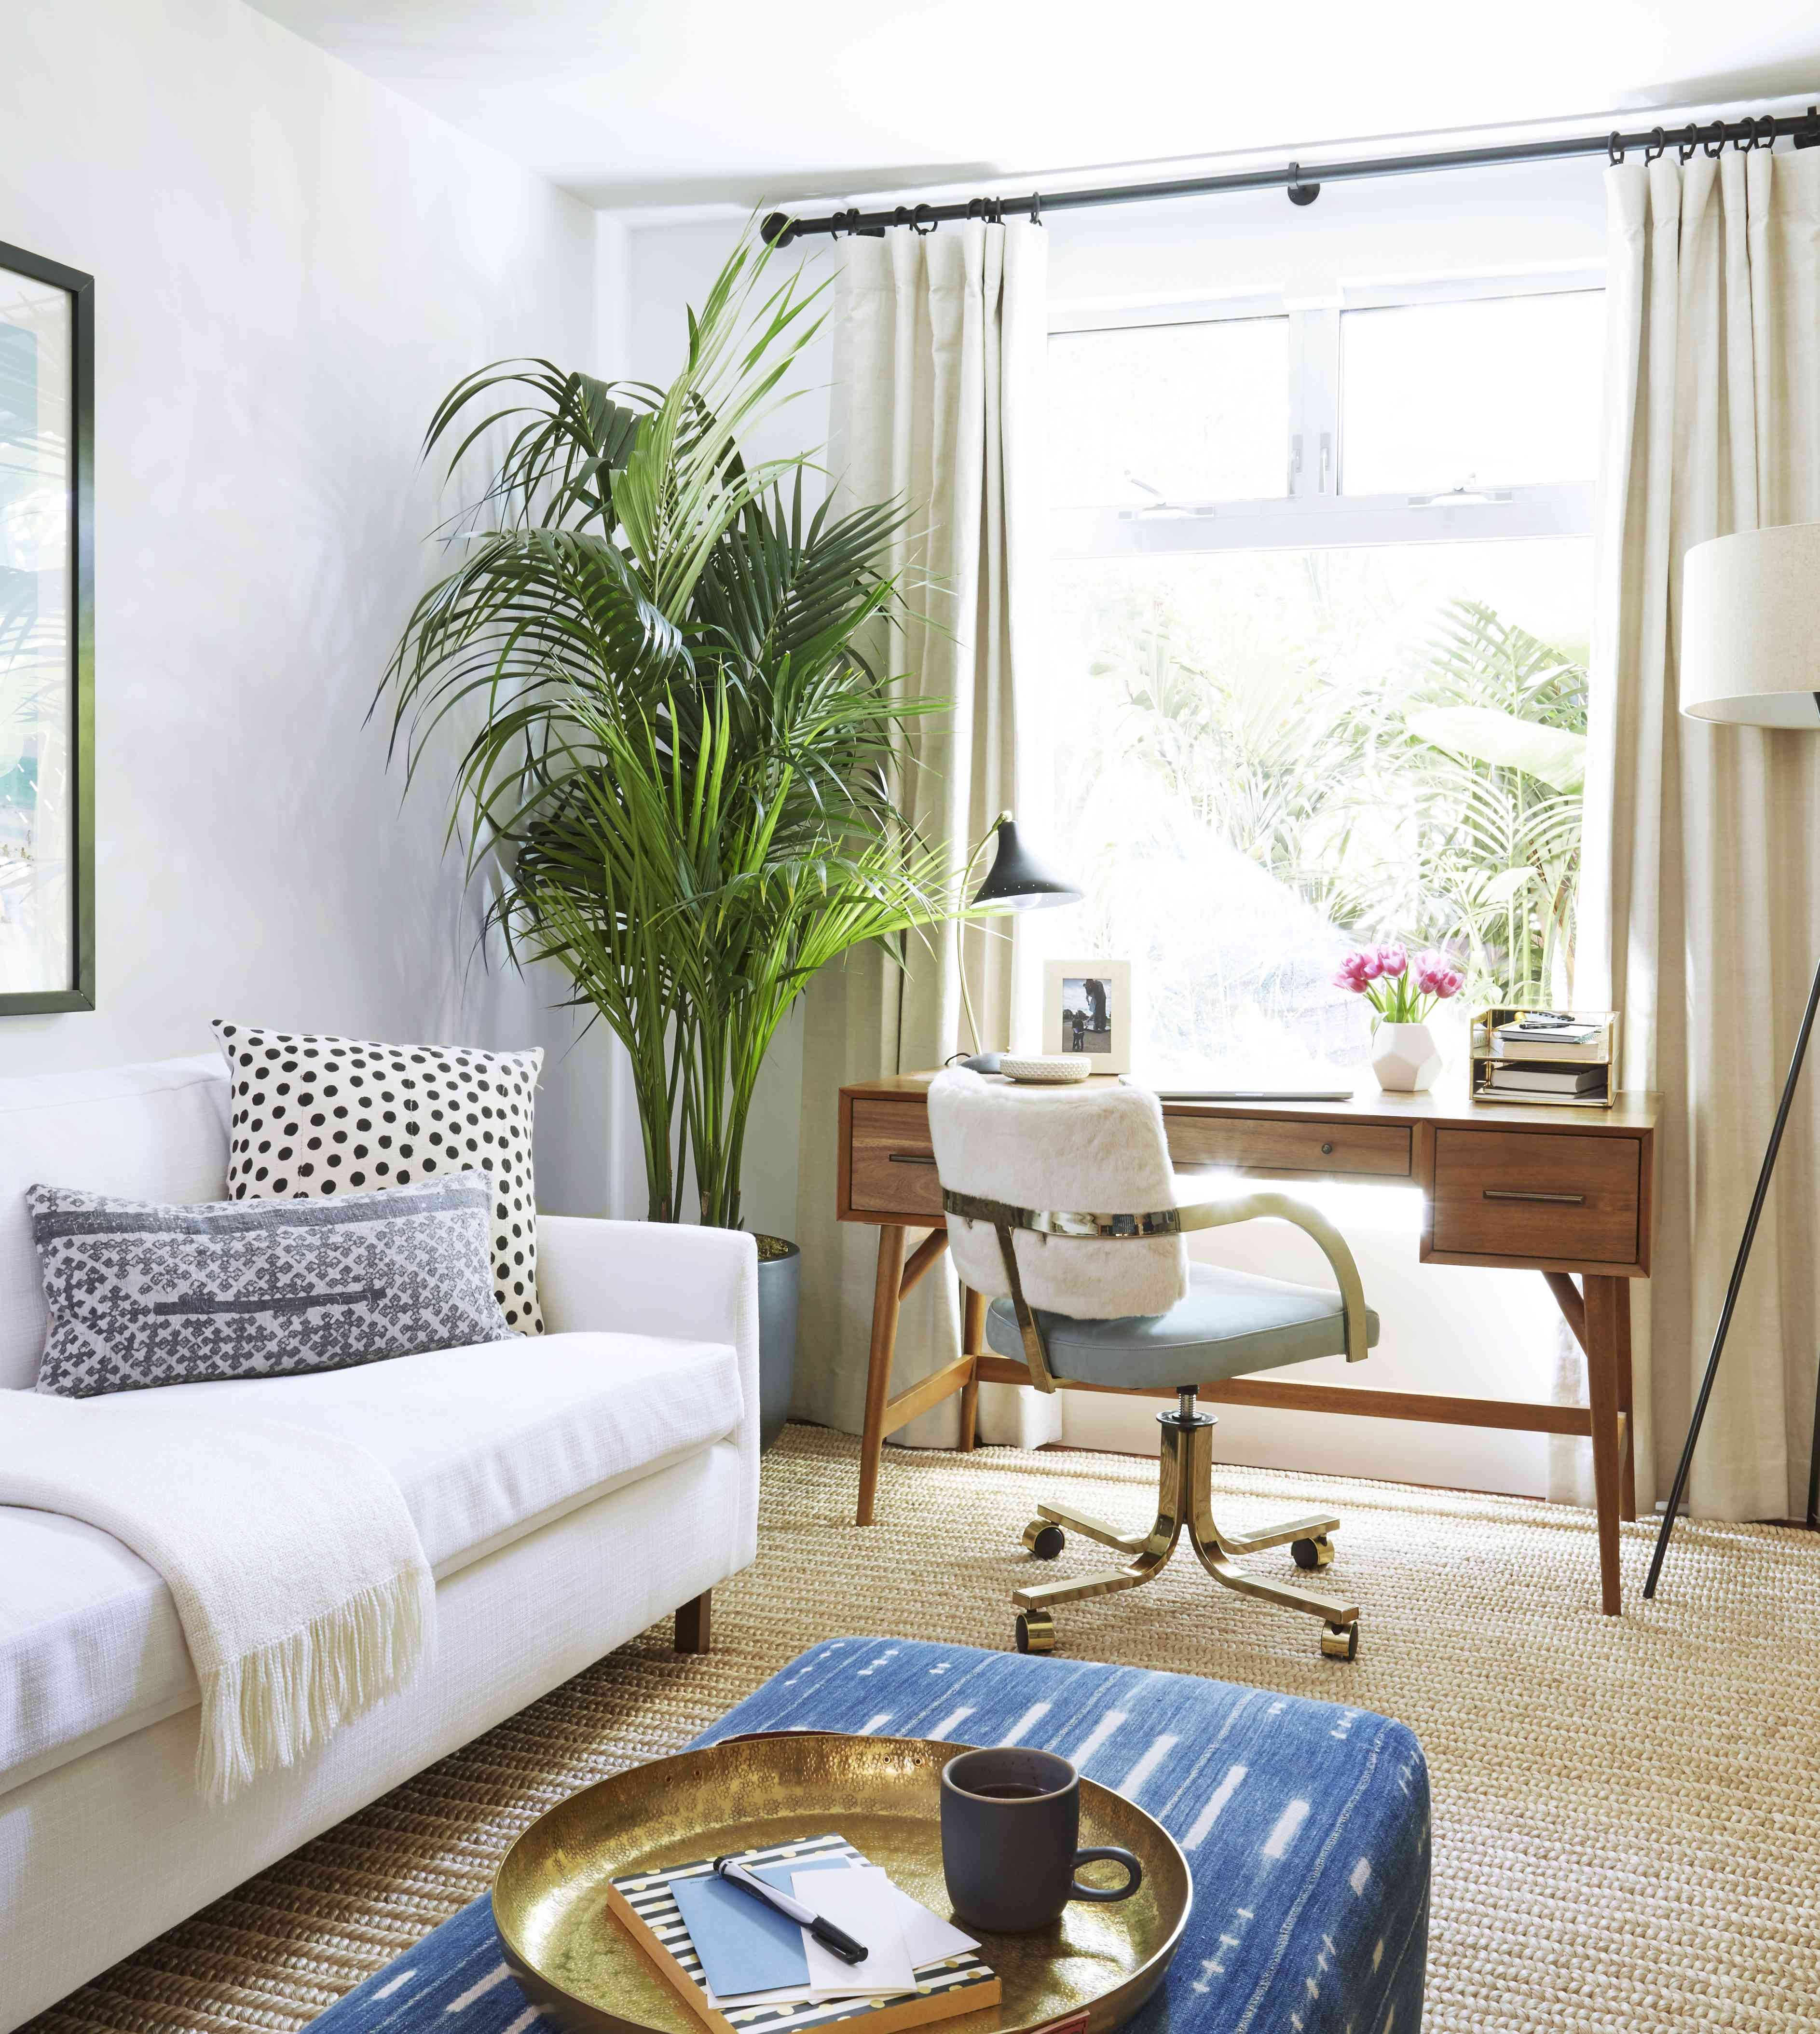 5 Easy Ways to Make Any Area of Your Home Look More Organized